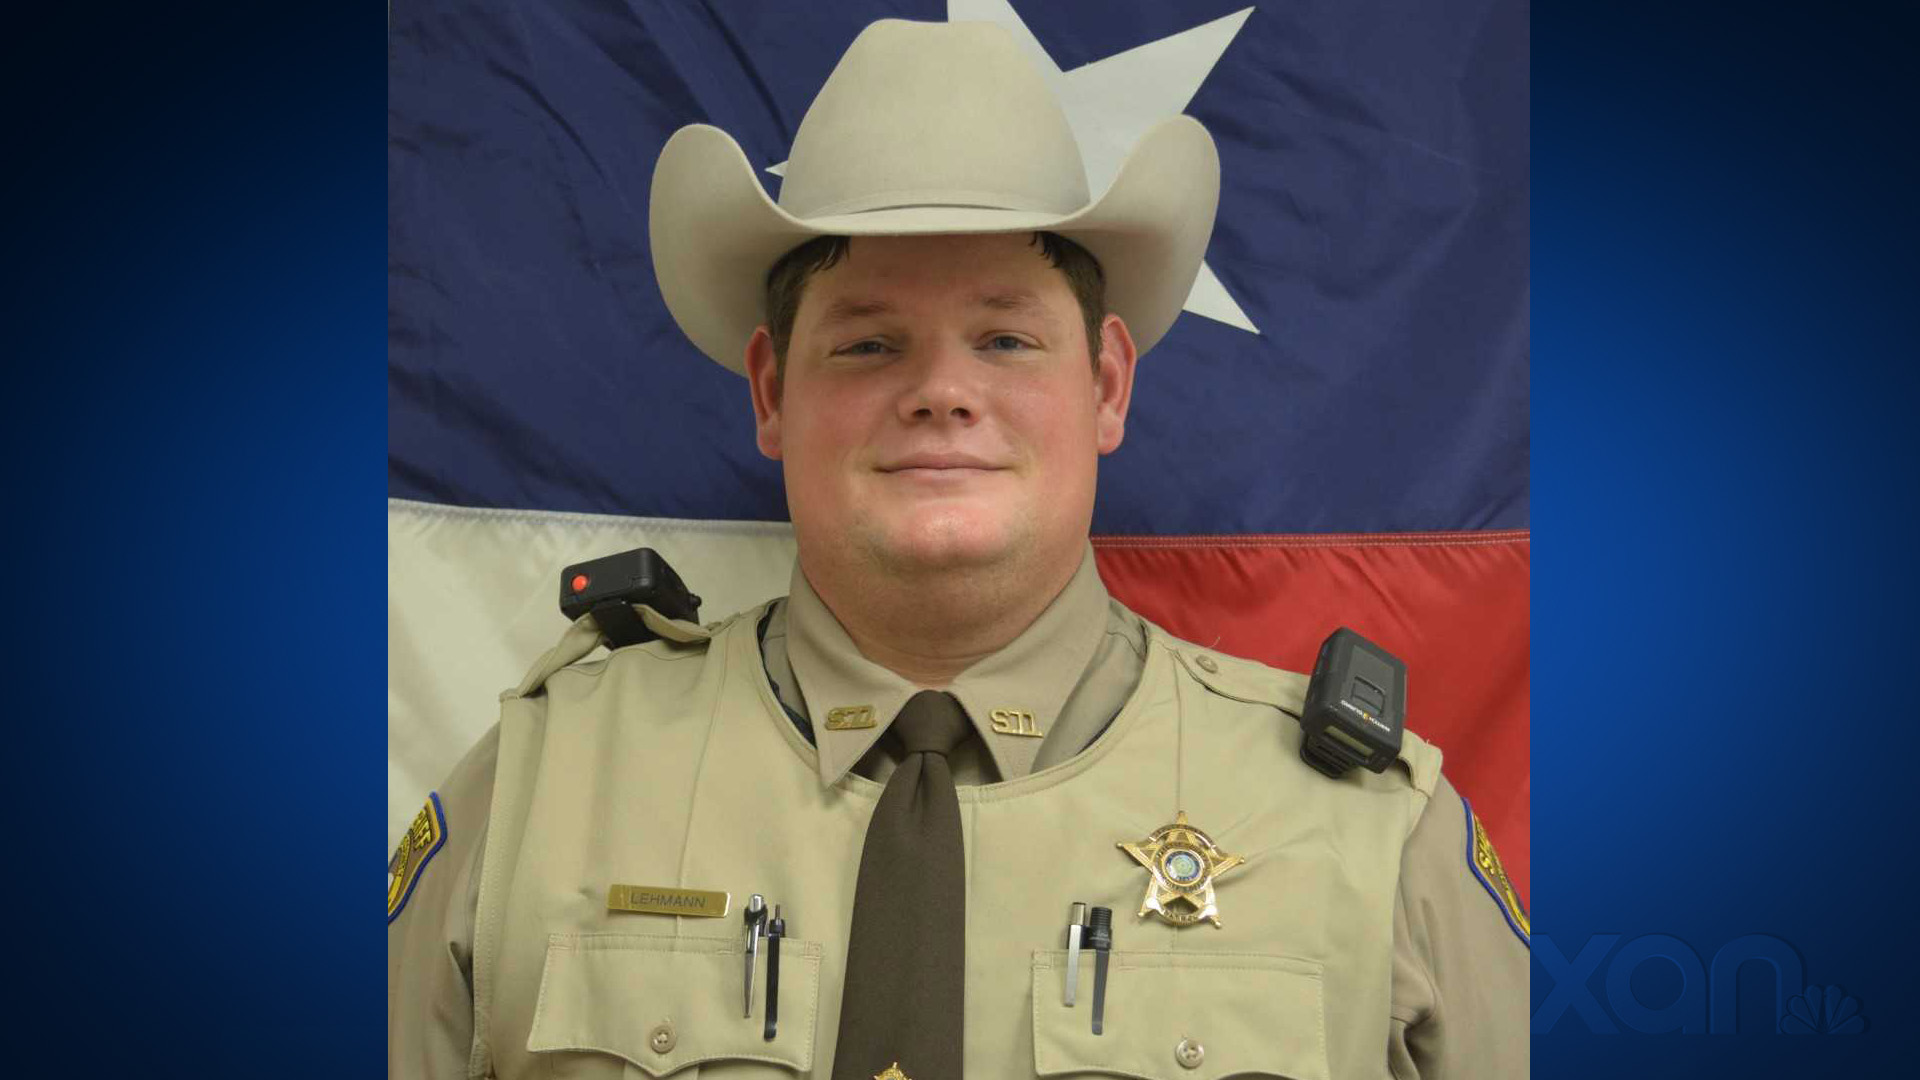 Wounded deputy's condition improves as doctors fight to save eye